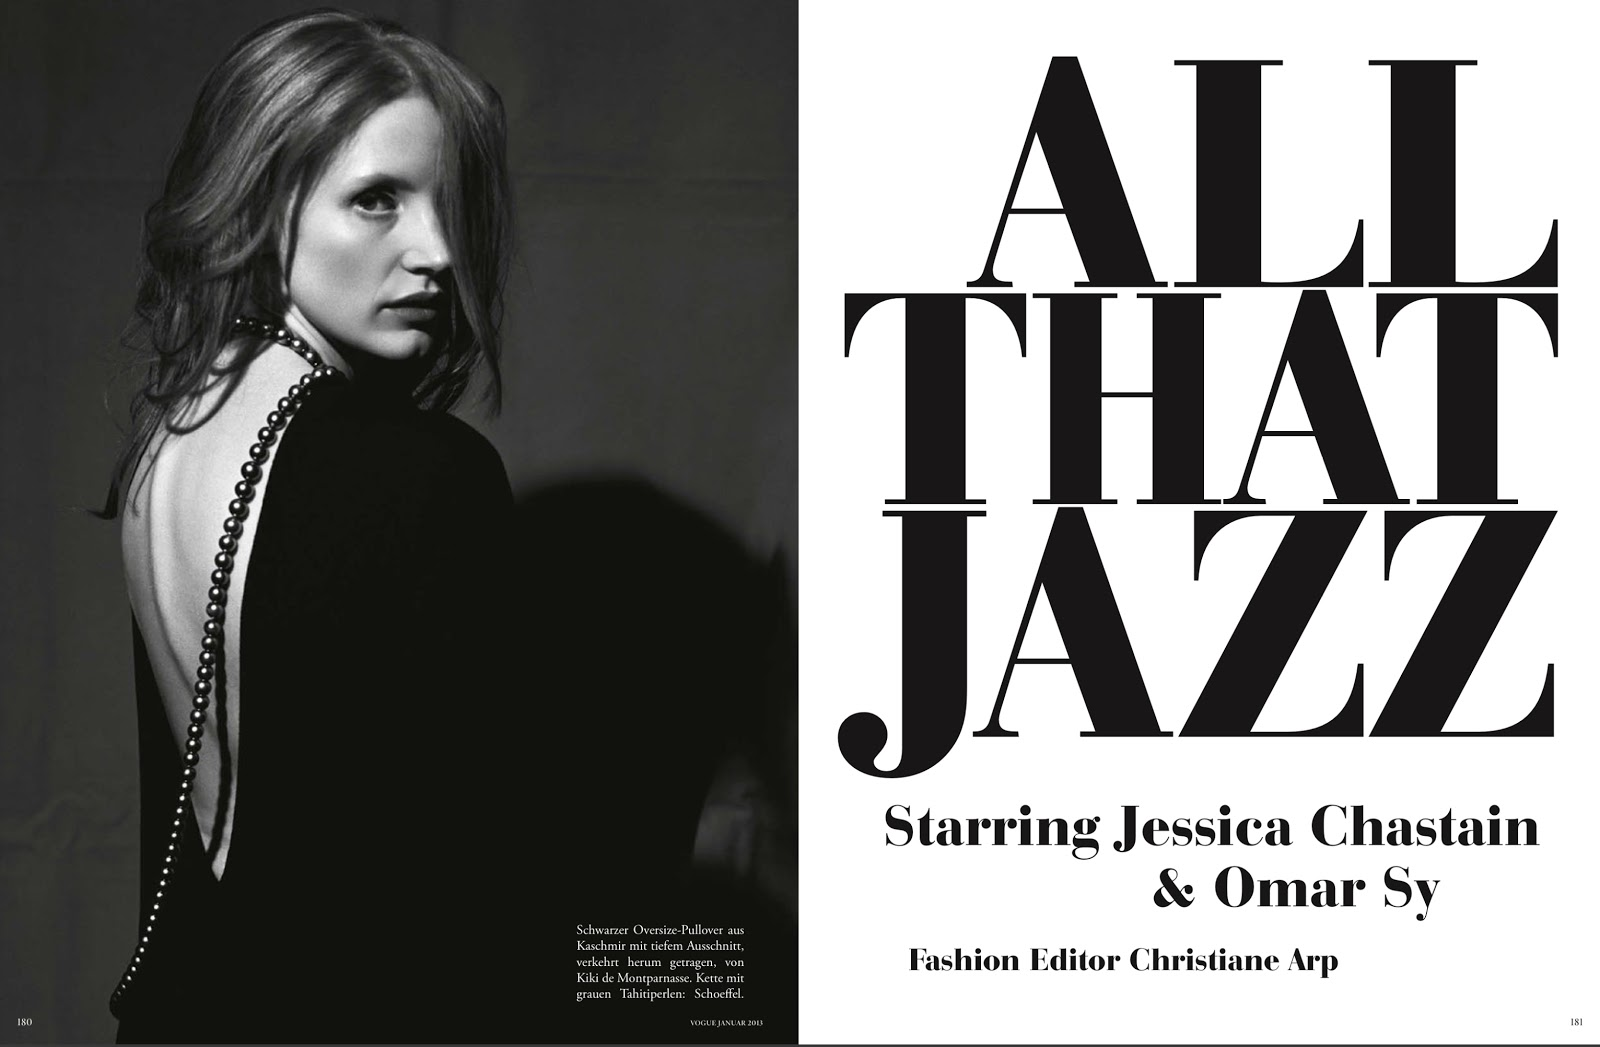 Jessica Chastain & Omar Sy Make Sweet Music, Lensed by